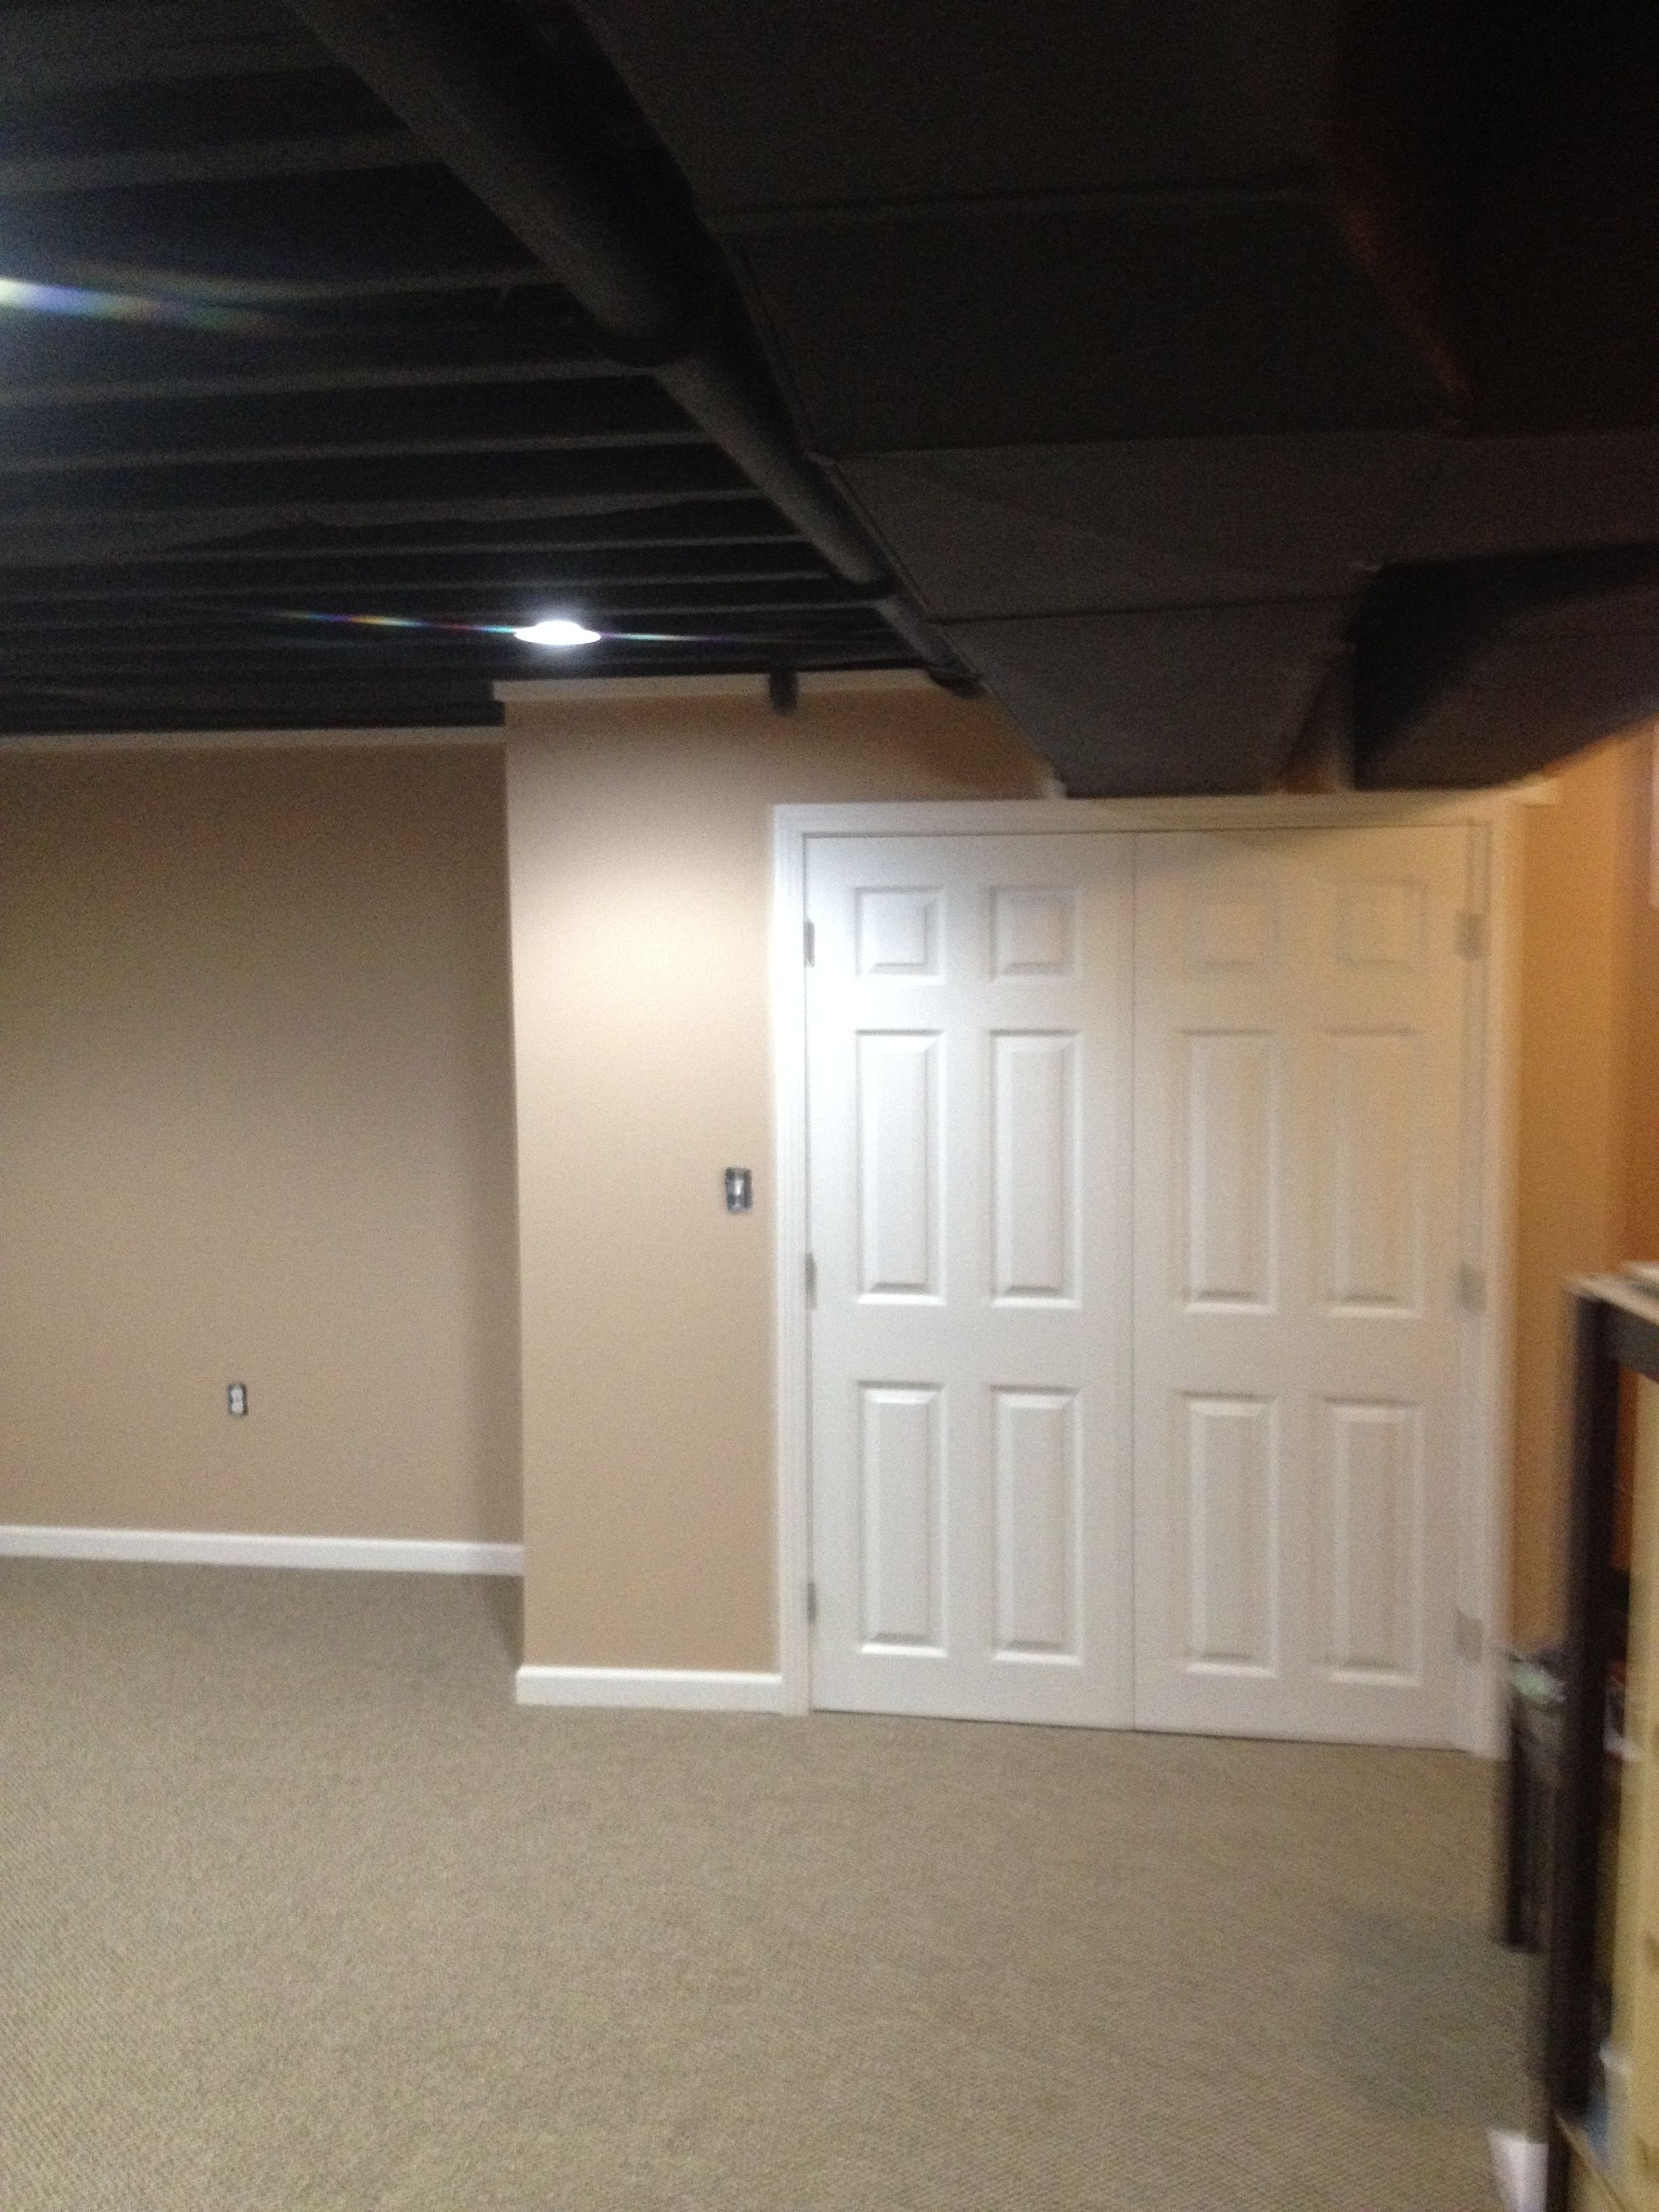 This Exposed Basement Ceiling Was Spray Painted Black Due To The - Black ceiling basement